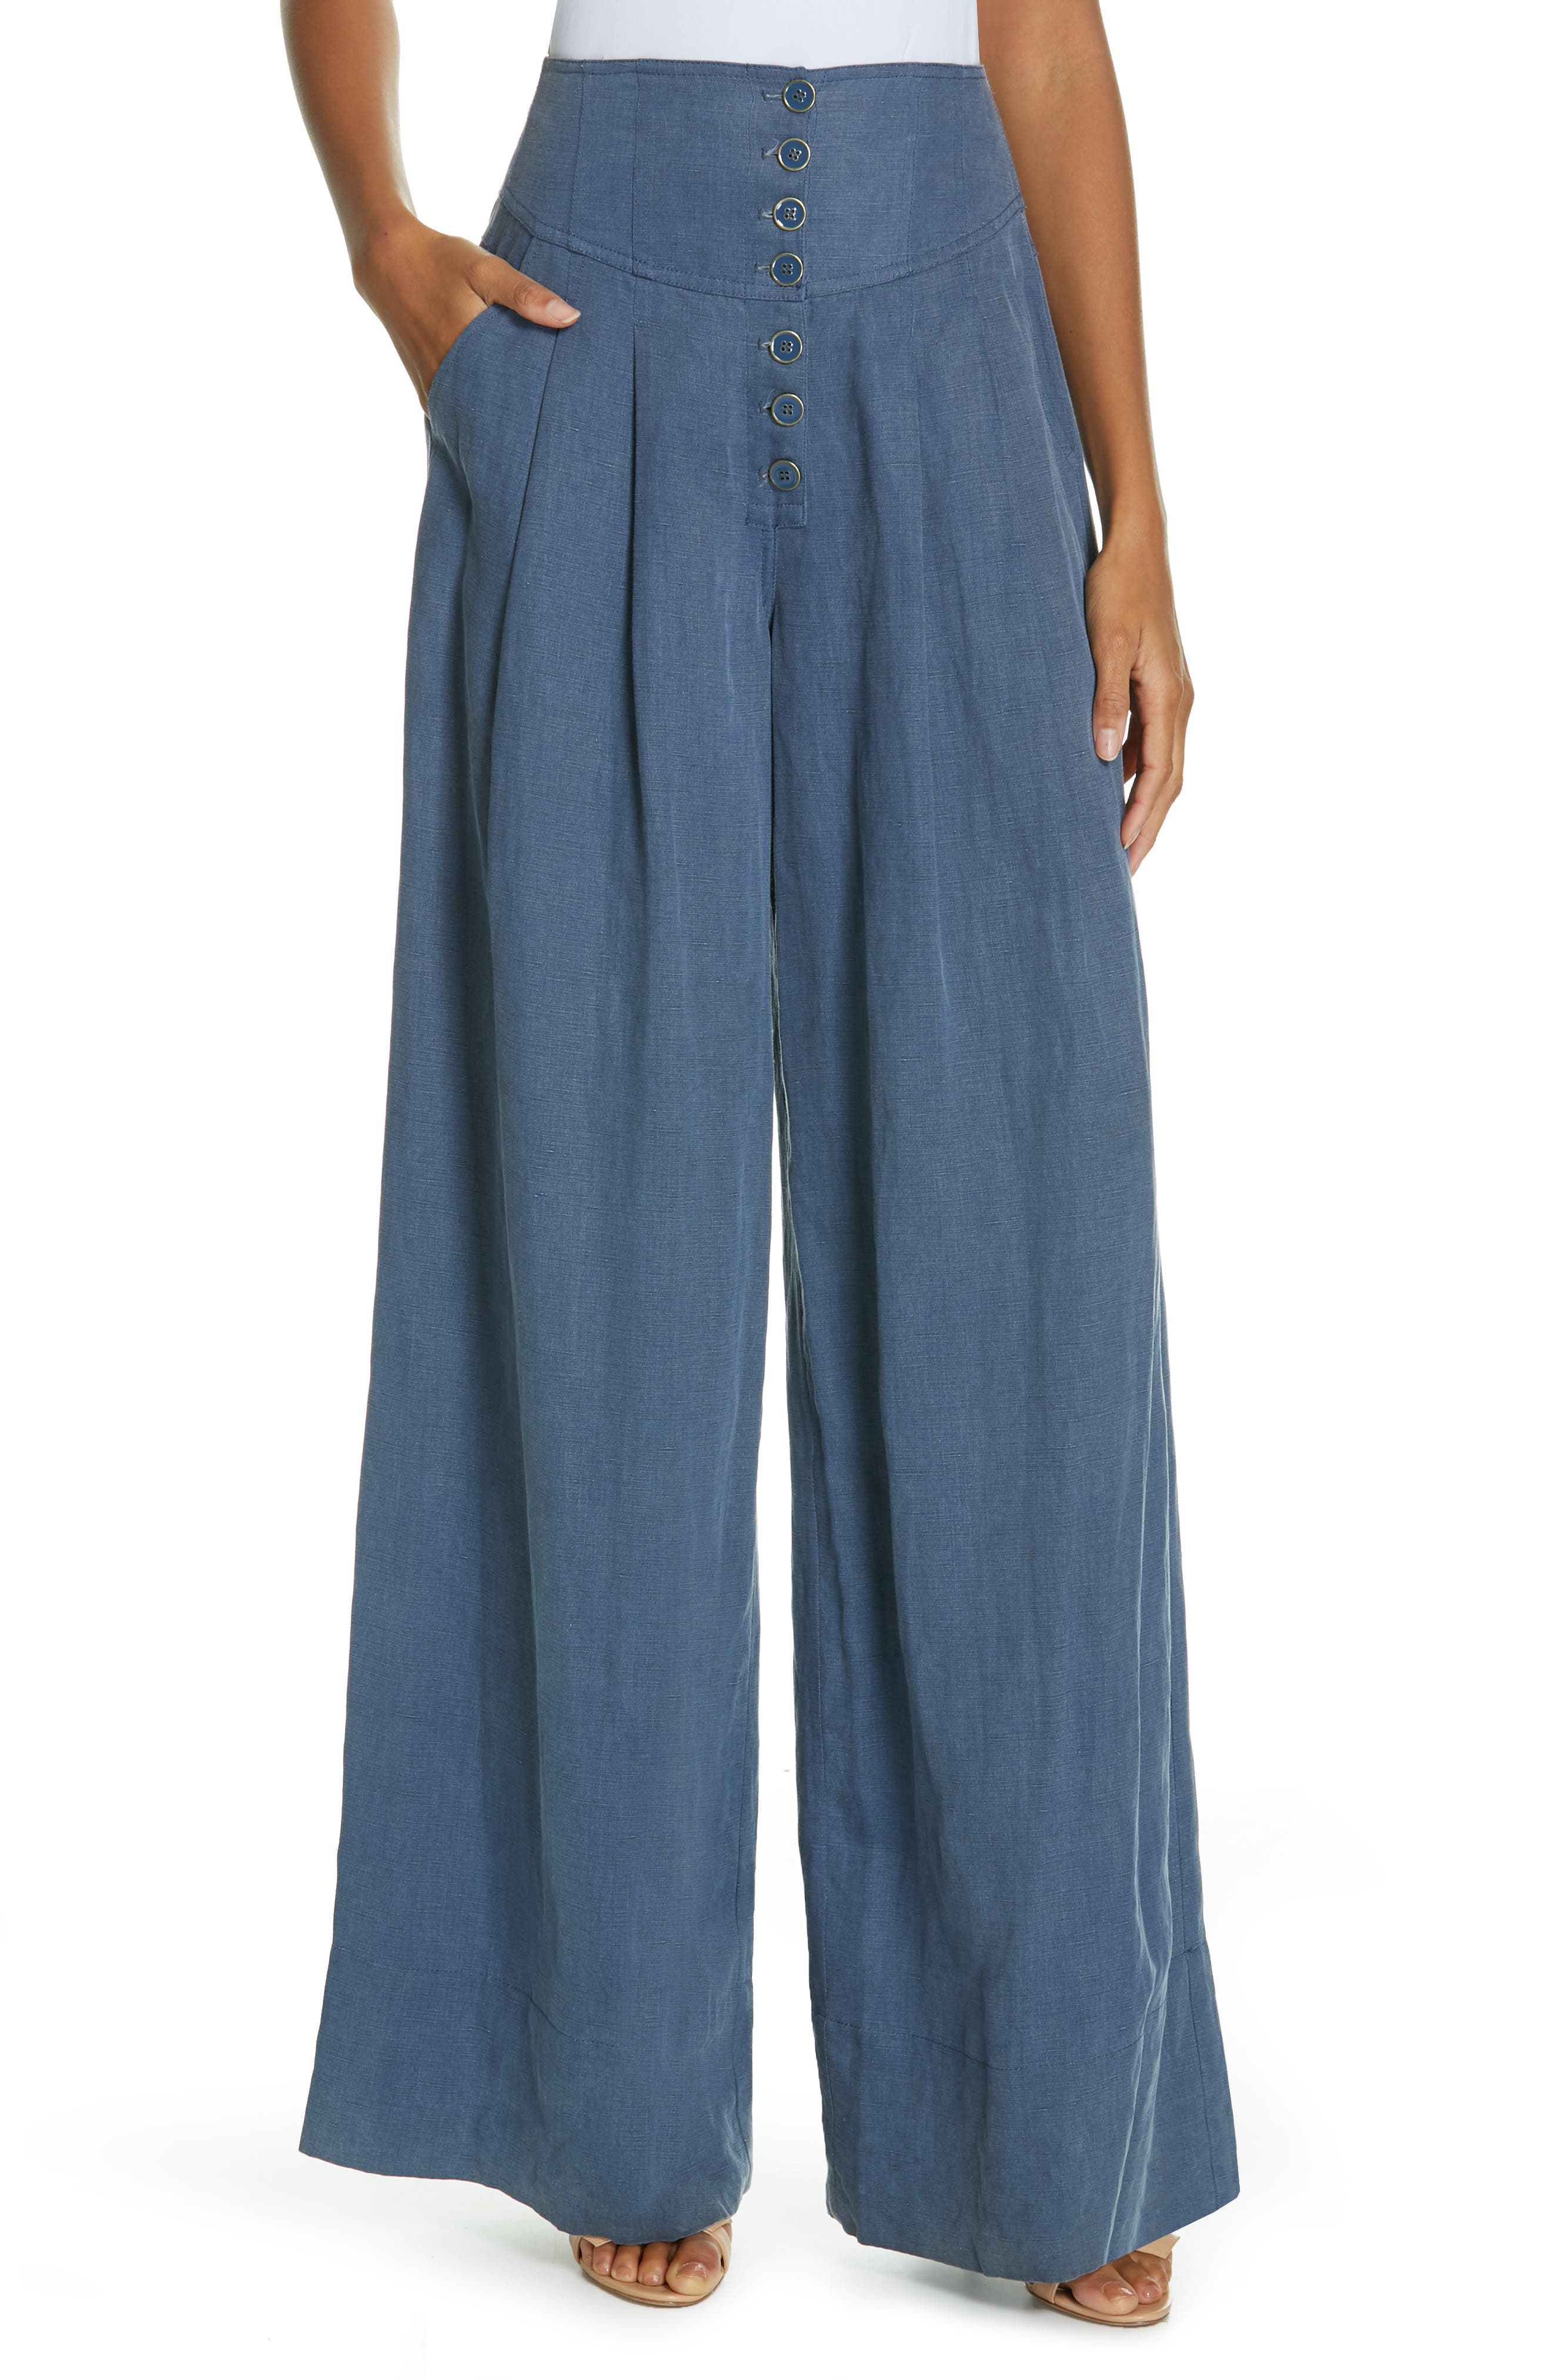 Reid Wide Leg Trousers,                         Main,                         color, CHAMBRAY